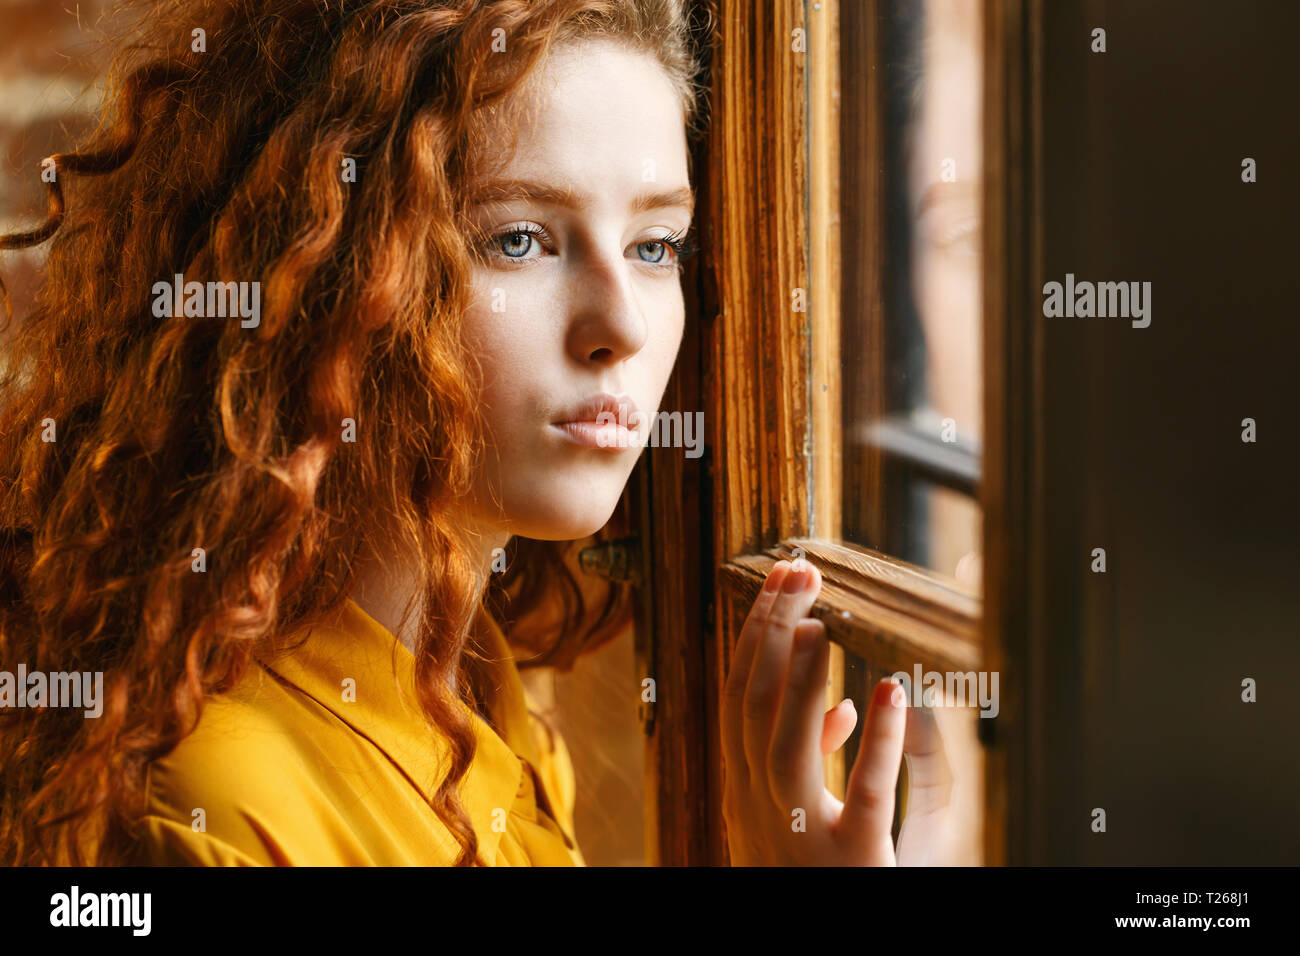 663fc6ffb33 Pensive curly ginger girl in the yellow shirt looking to the window at the  loft interior